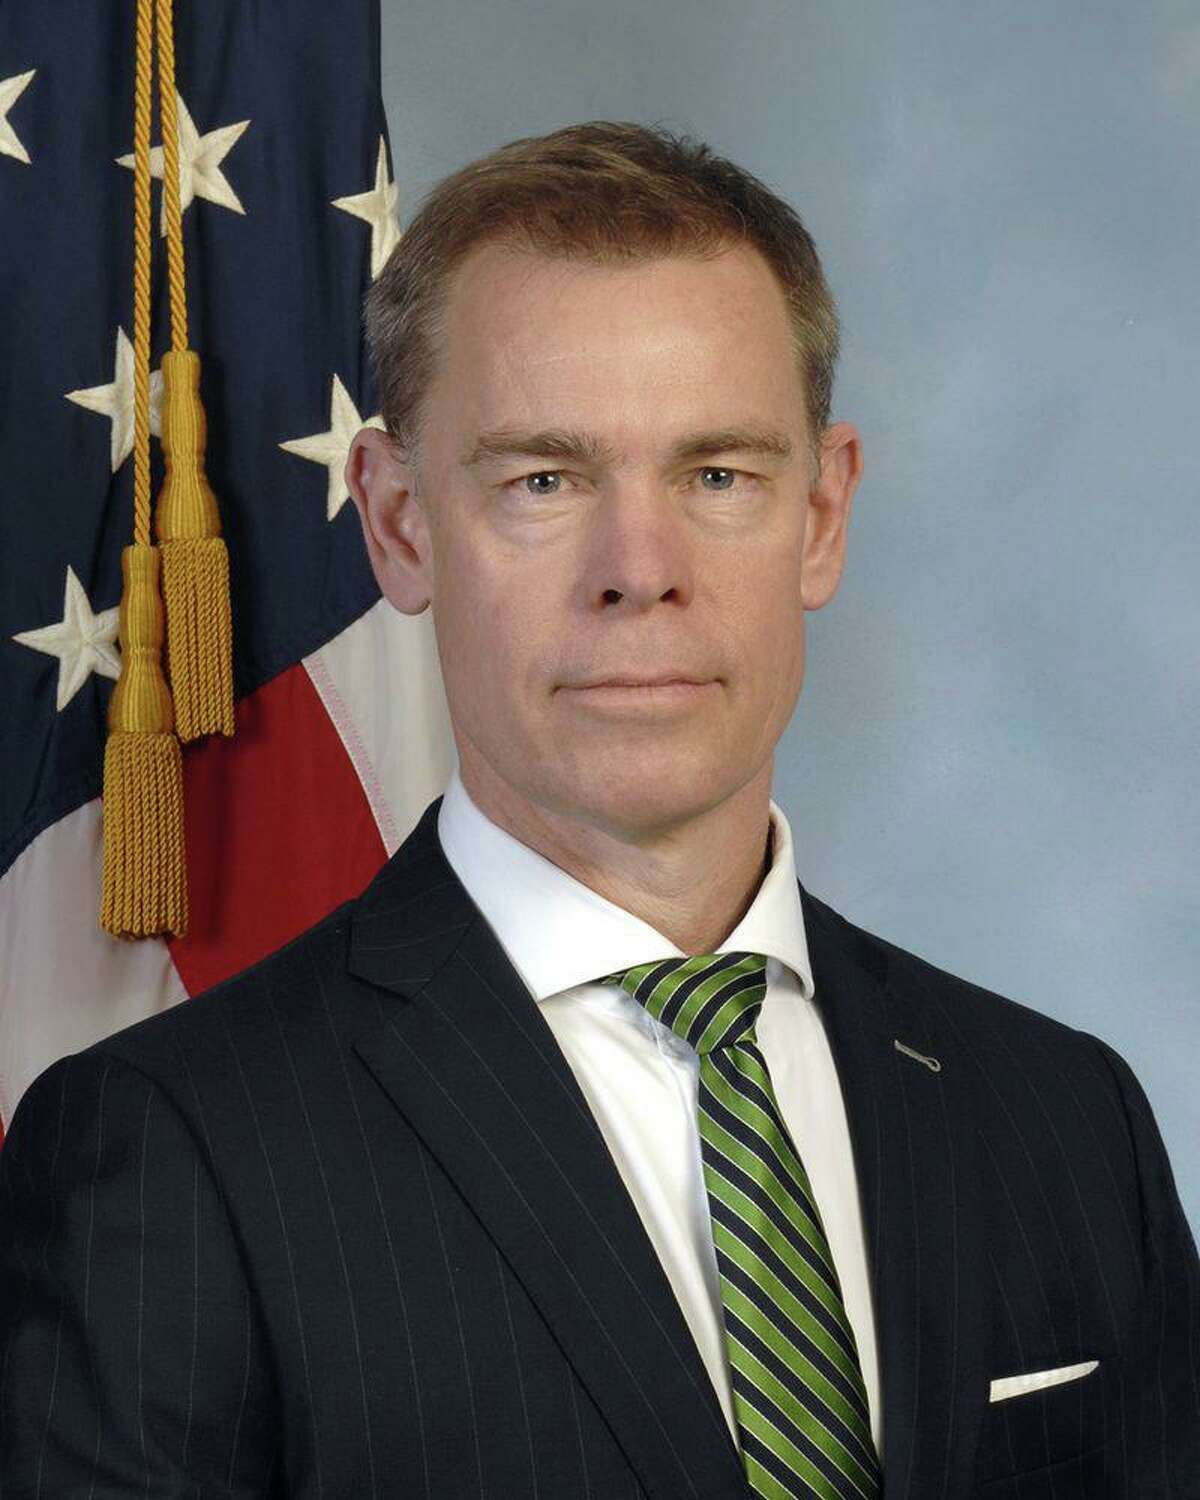 David Sundberg is a Federal Bureau of Investigation special agent in charge of the law enforcement agency's New Haven Division.